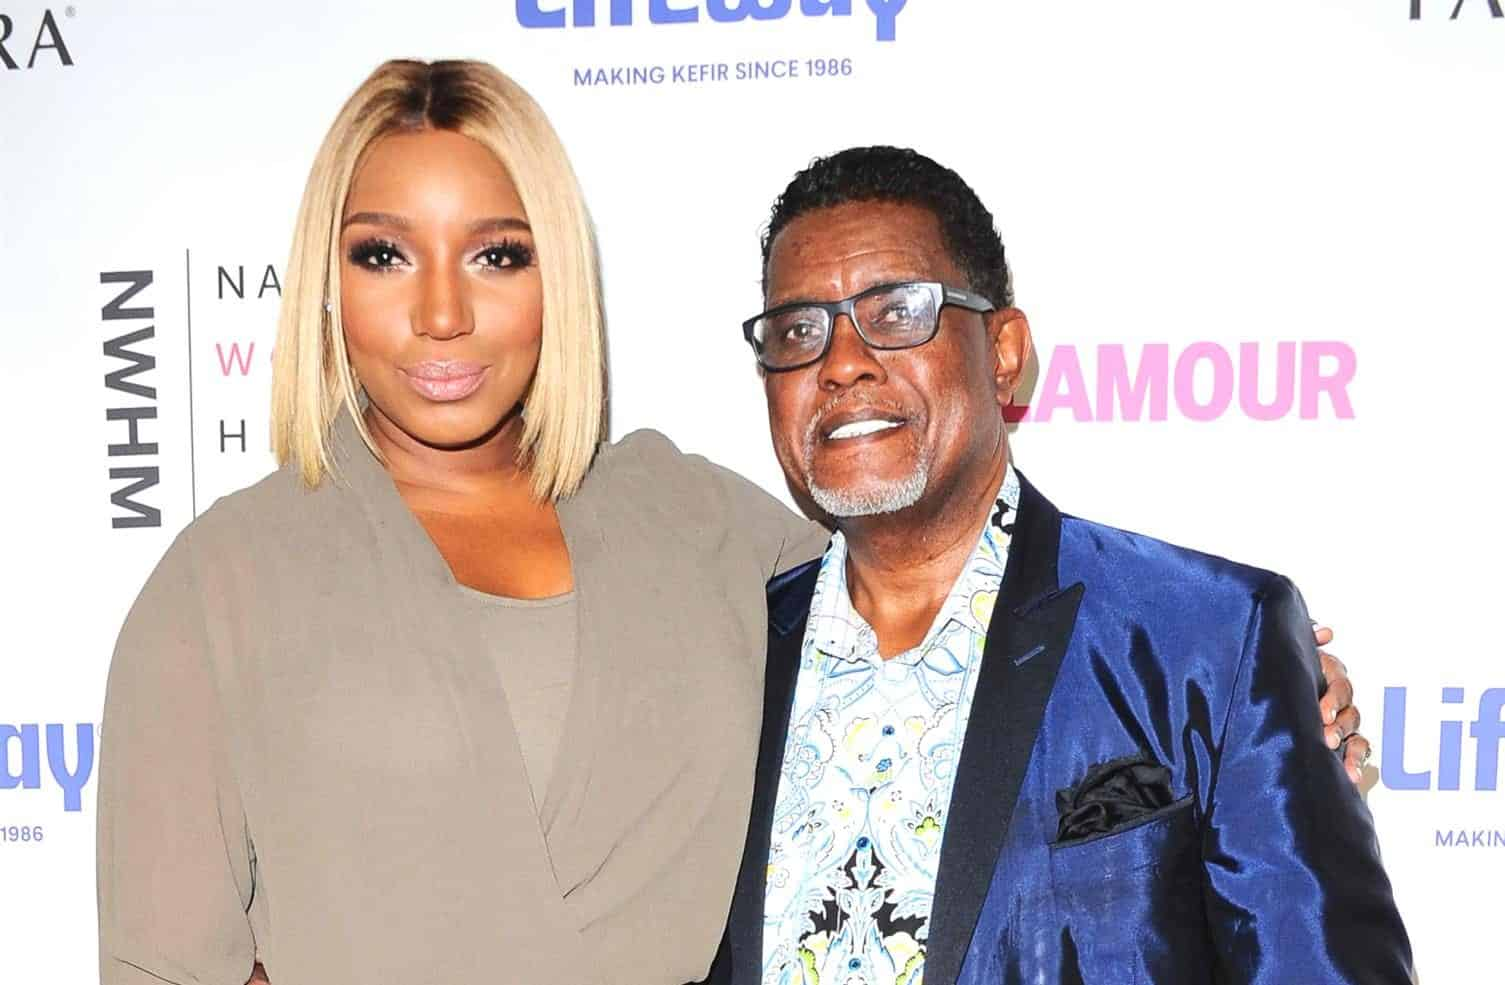 RHOA Star Nene Leakes' Husband Gregg Leakes Accused of Having Affair With One of Her Former Employees, See How the Employee Responded as Nene is Also Accused of Cheating